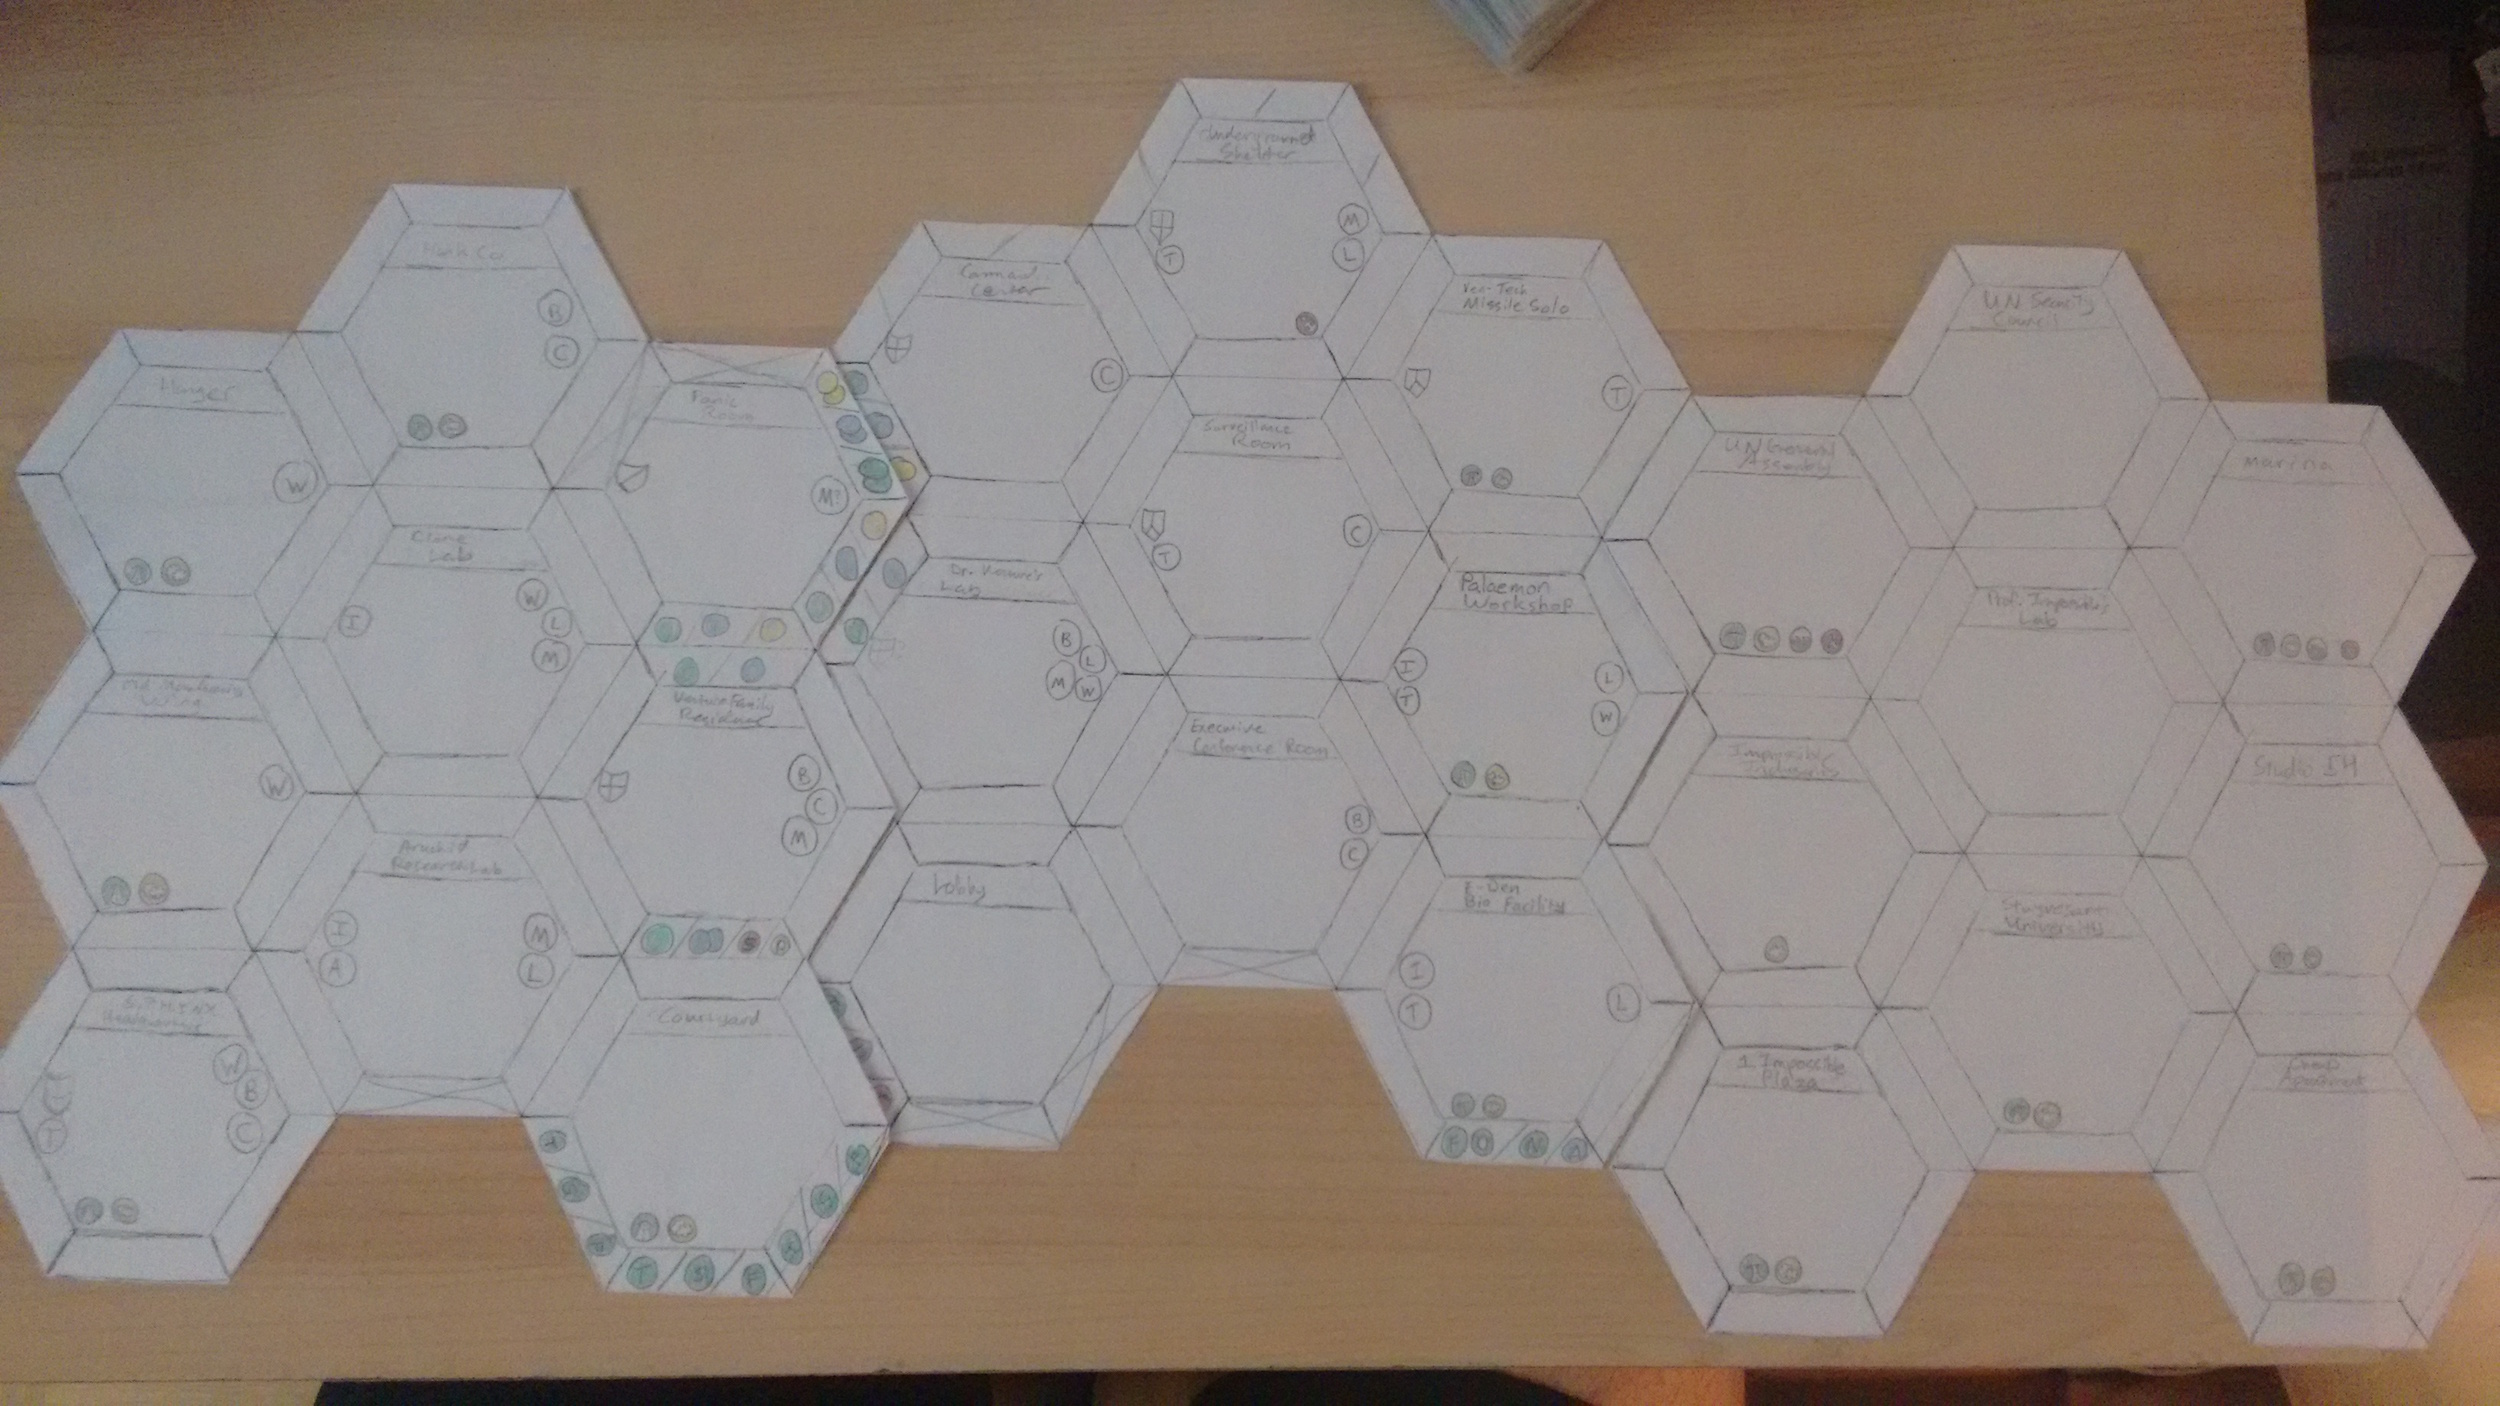 Drafting of newer, hex-based Location Tiles, with Entrance Requirements based on Skill Icons, that have become out-dated while I was working on them. (I also have a feeling I'll have to revamp the NYC Tile anyway as Season 6 airs!)